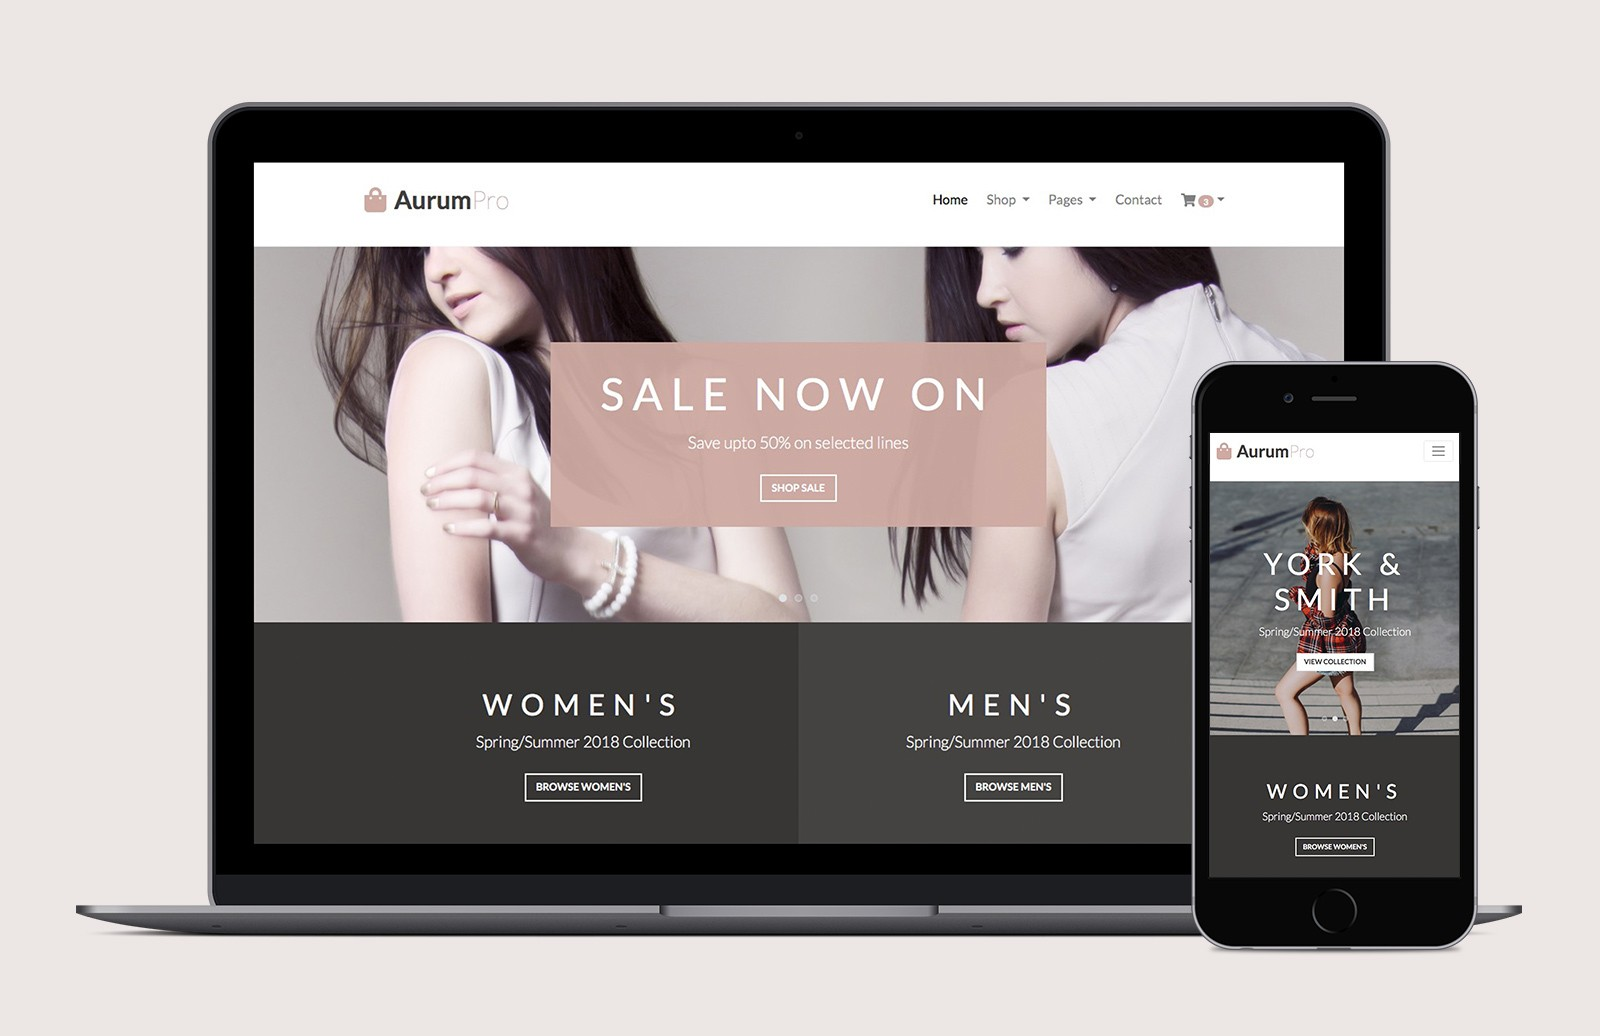 Aurum - Free Bootstrap 4 Ecommerce Template